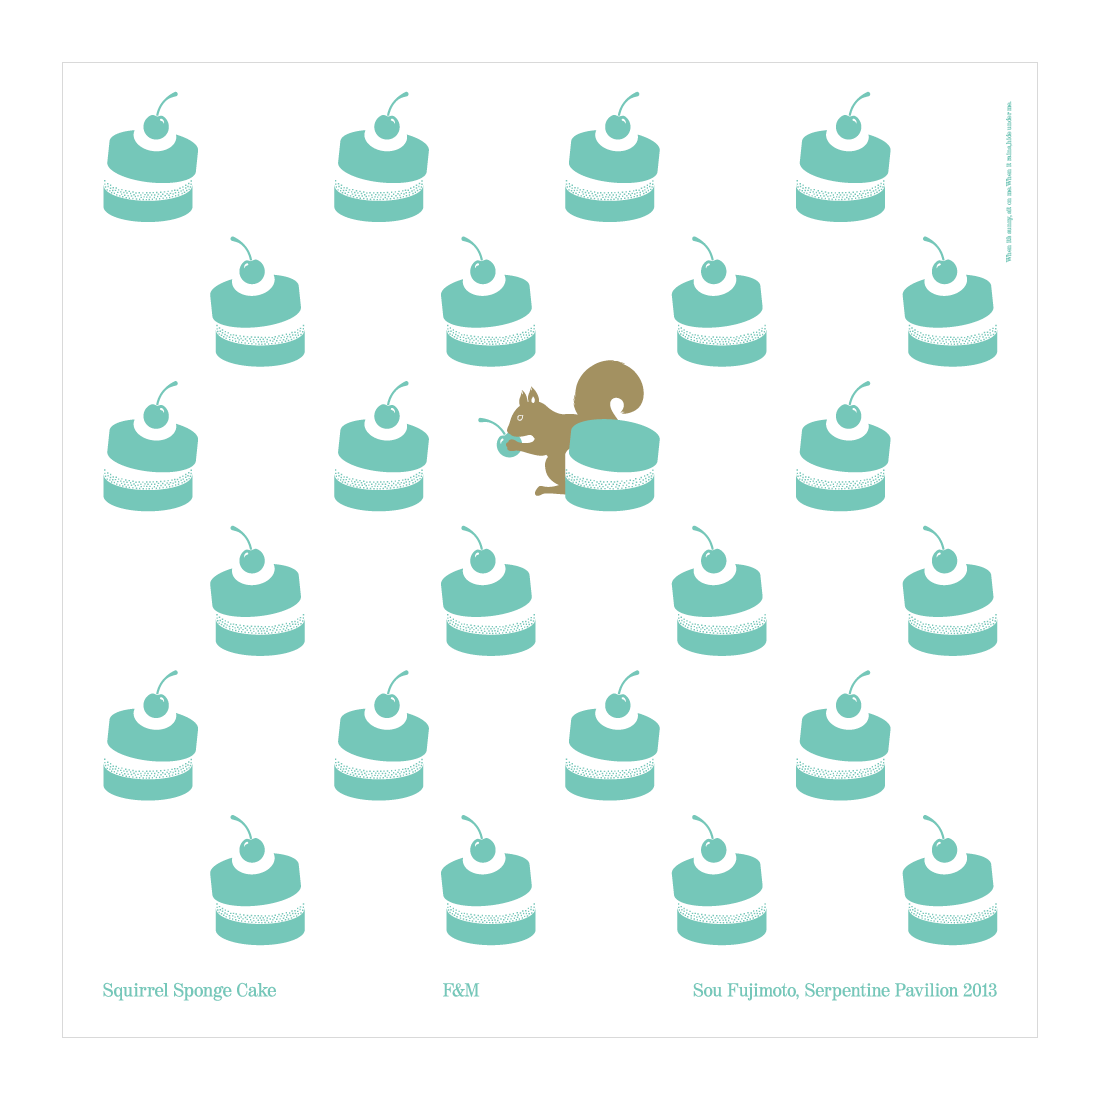 Squirrel  Sponge Cake tablecloth